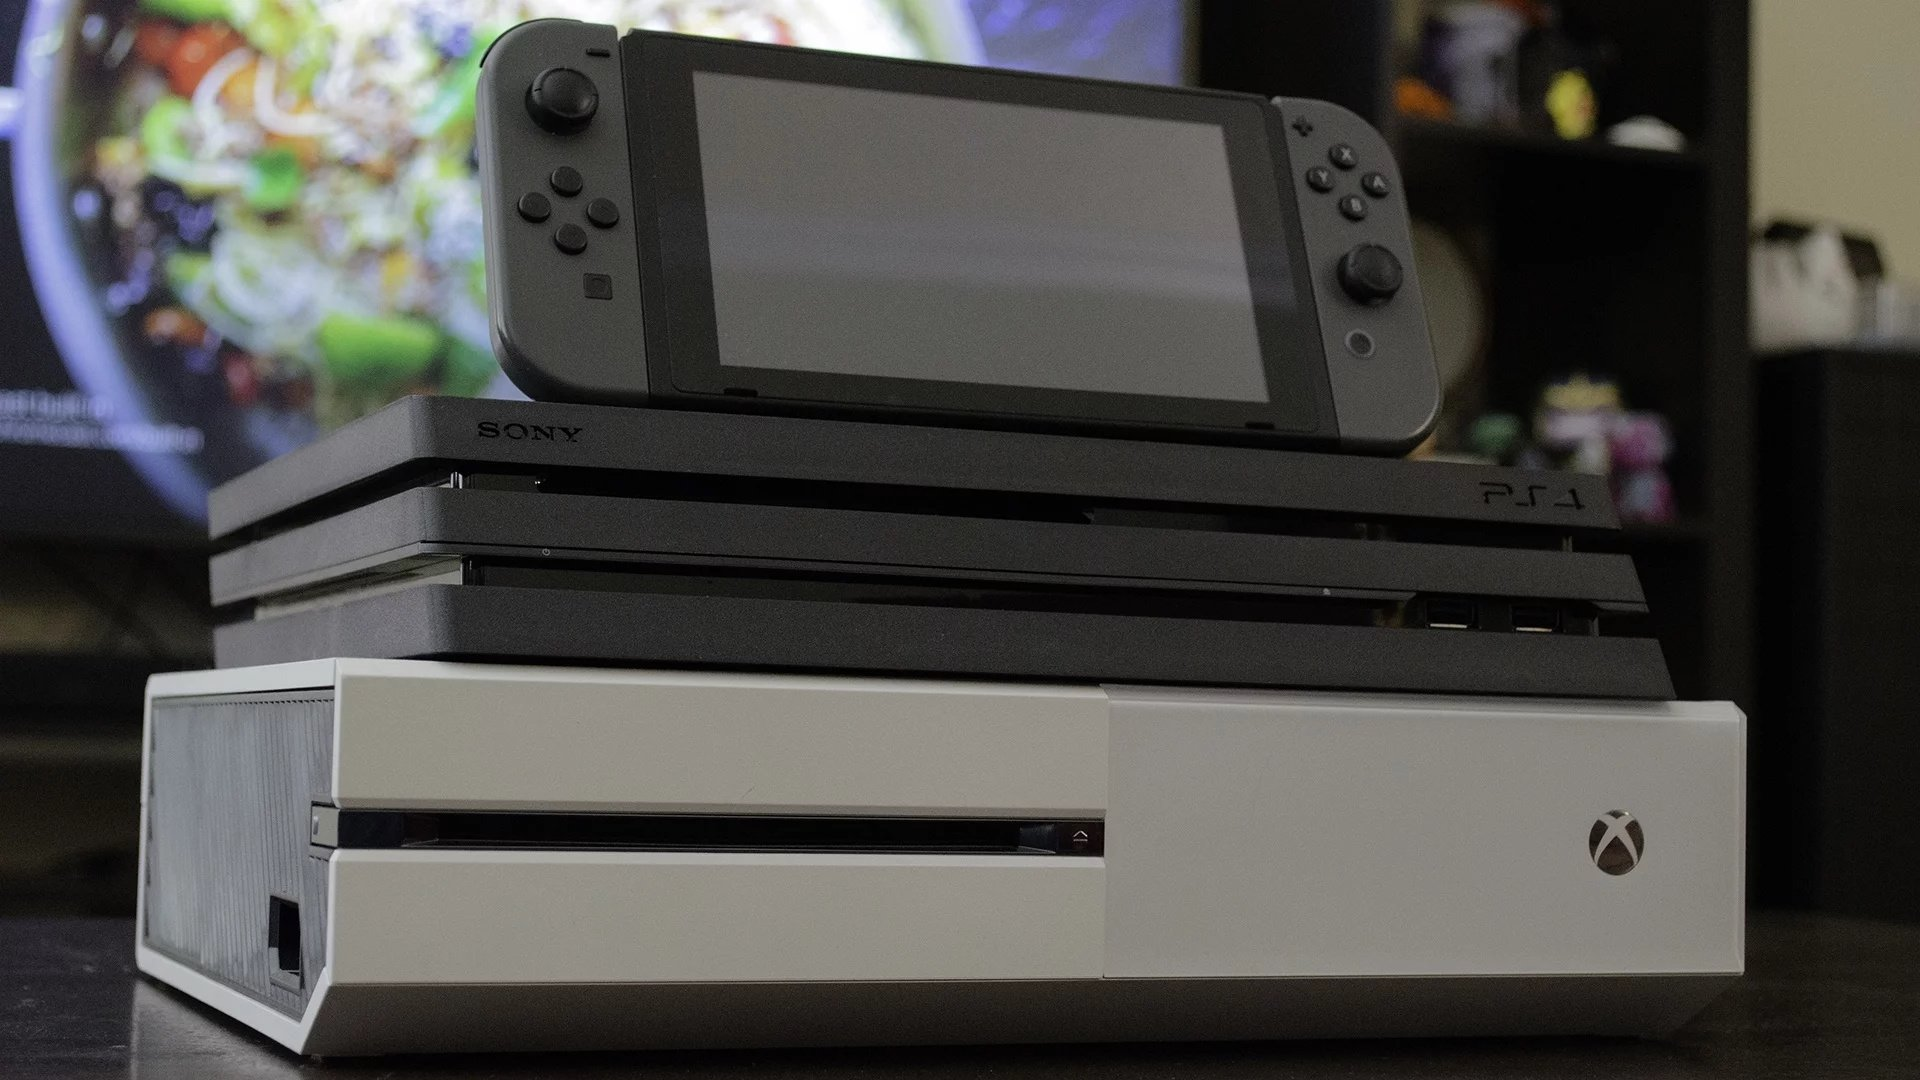 Sony Doesn't See Nintendo As A Major Rival, More Worried About Microsoft Next Generation